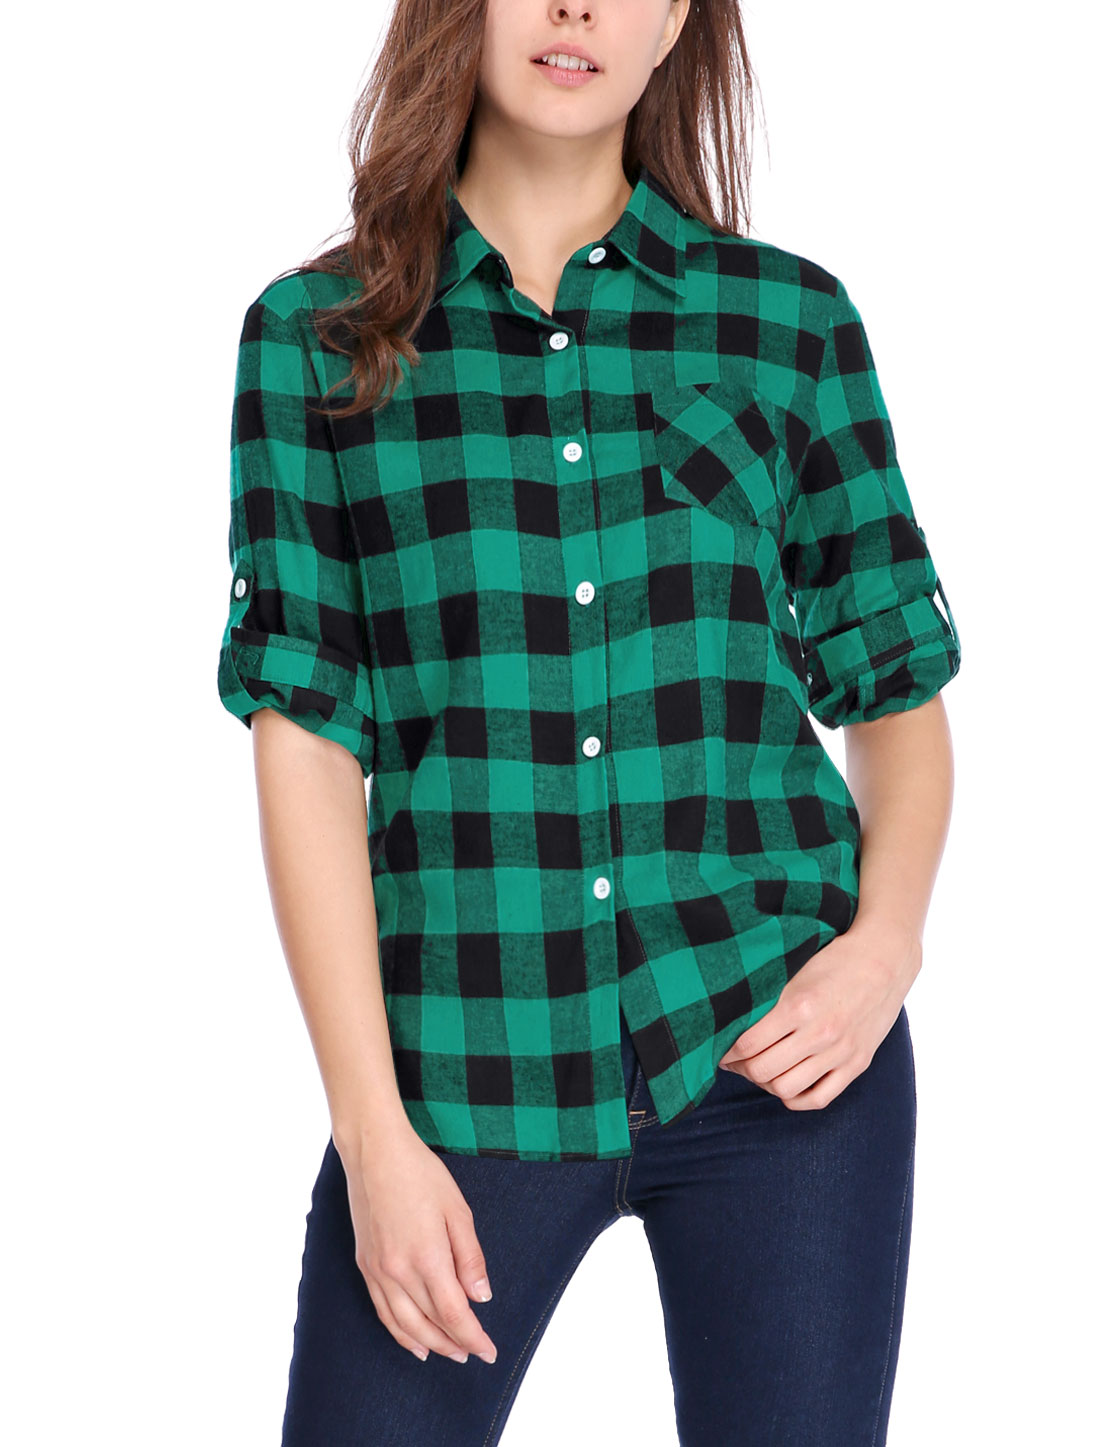 Women Button Down Roll Up Sleeve Pocket Plaids Shirt Green Black XL